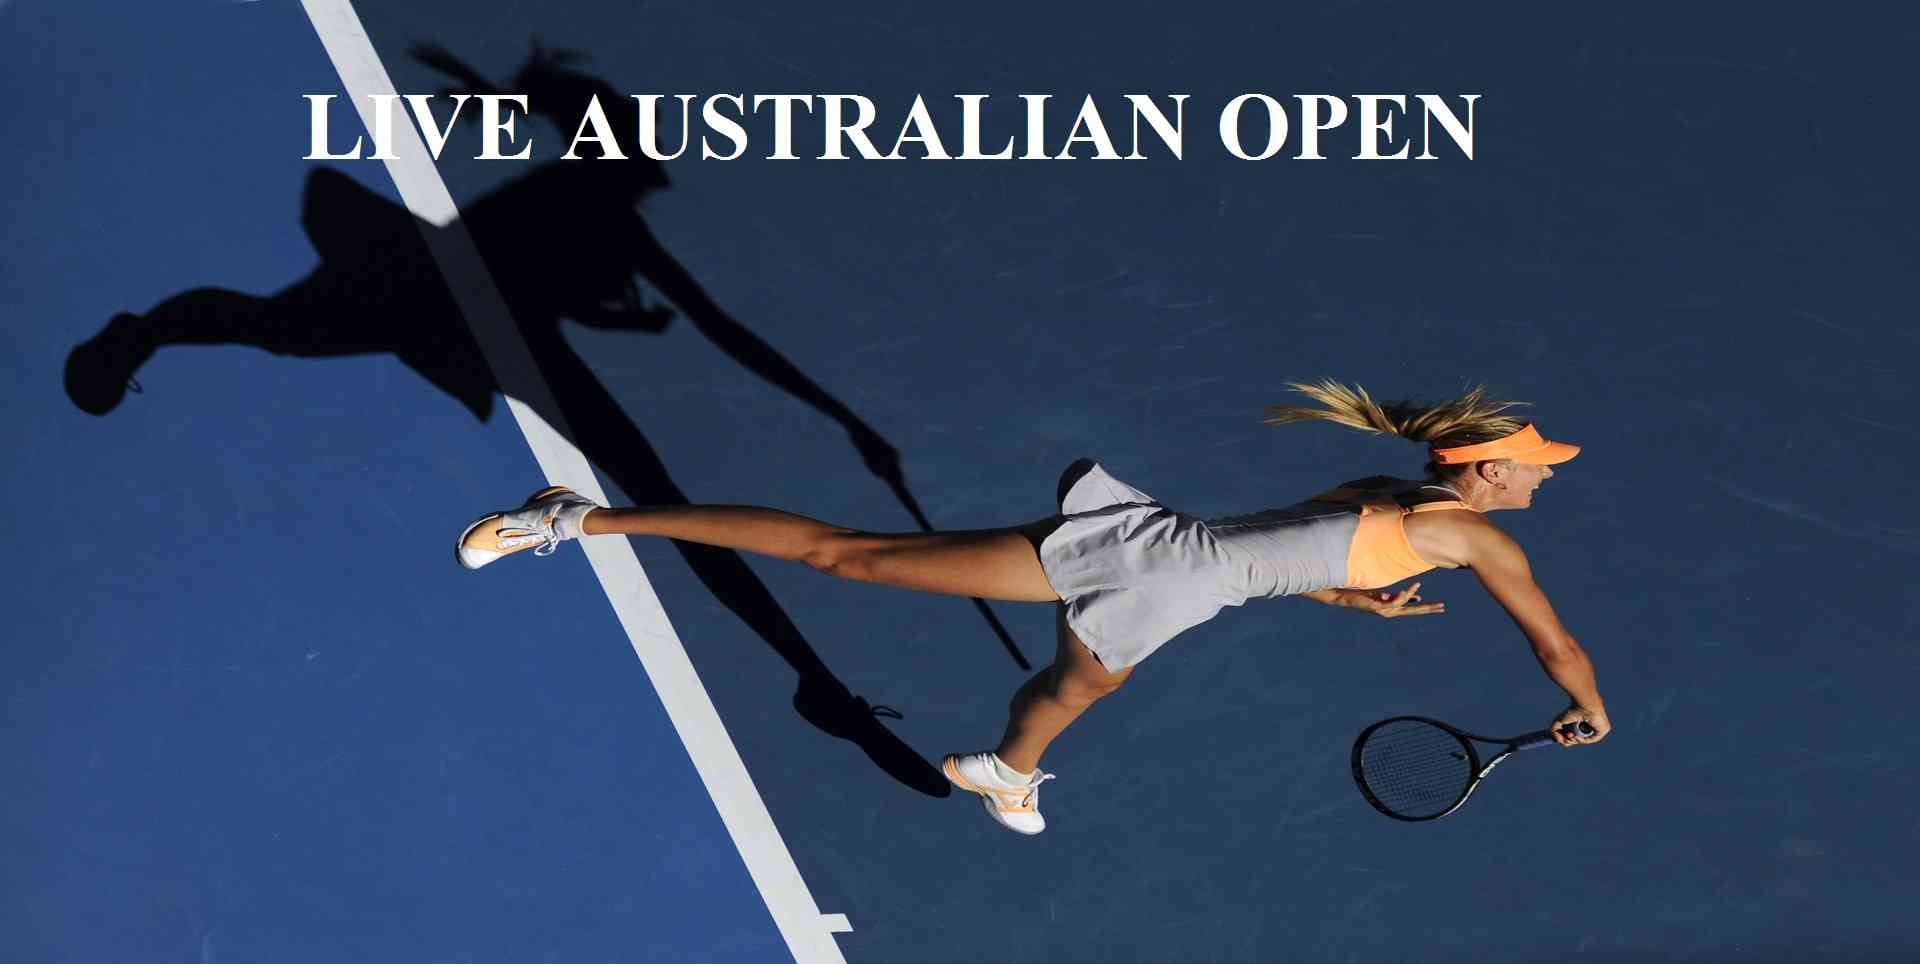 When and Where 2019 Australian Open Tennis Live Will Happen